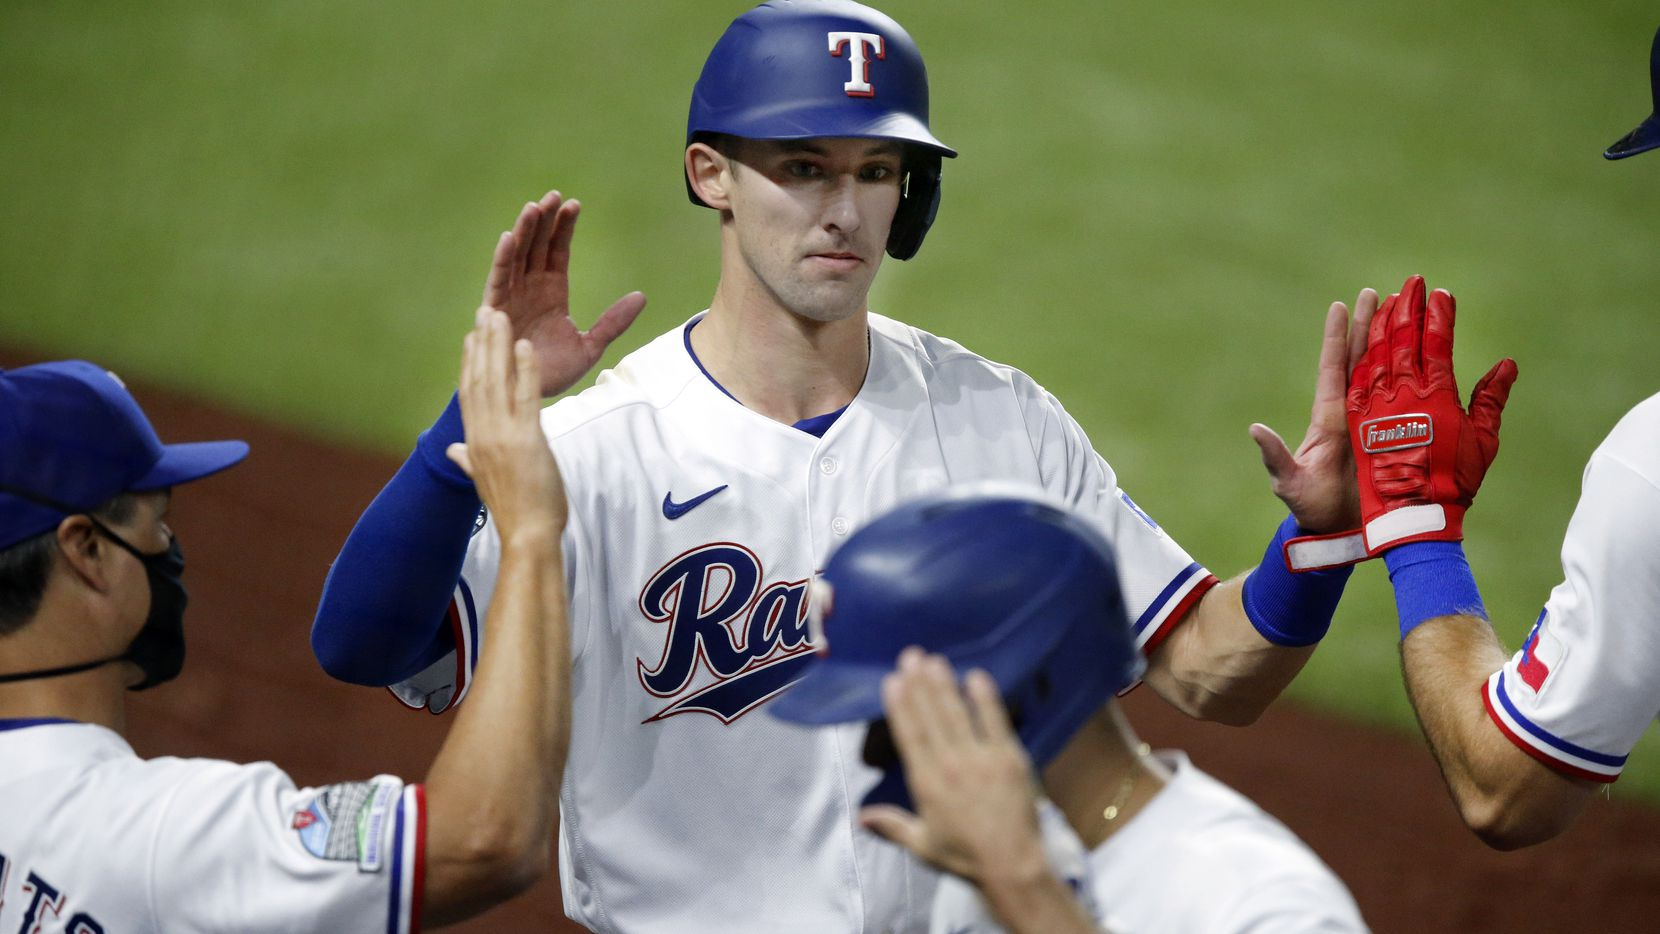 Texas Rangers left fielder Eli White (76) is congratulated by his teammates and coaches after scoring on a sacrifice fly during the fifth inning against the Los Angeles Angels at Globe Life Field in Arlington, Texas, Tuesday, September 8, 2020. White has yet to get his first base hit, despite walking, scoring and getting an RBI. (Tom Fox/The Dallas Morning News)